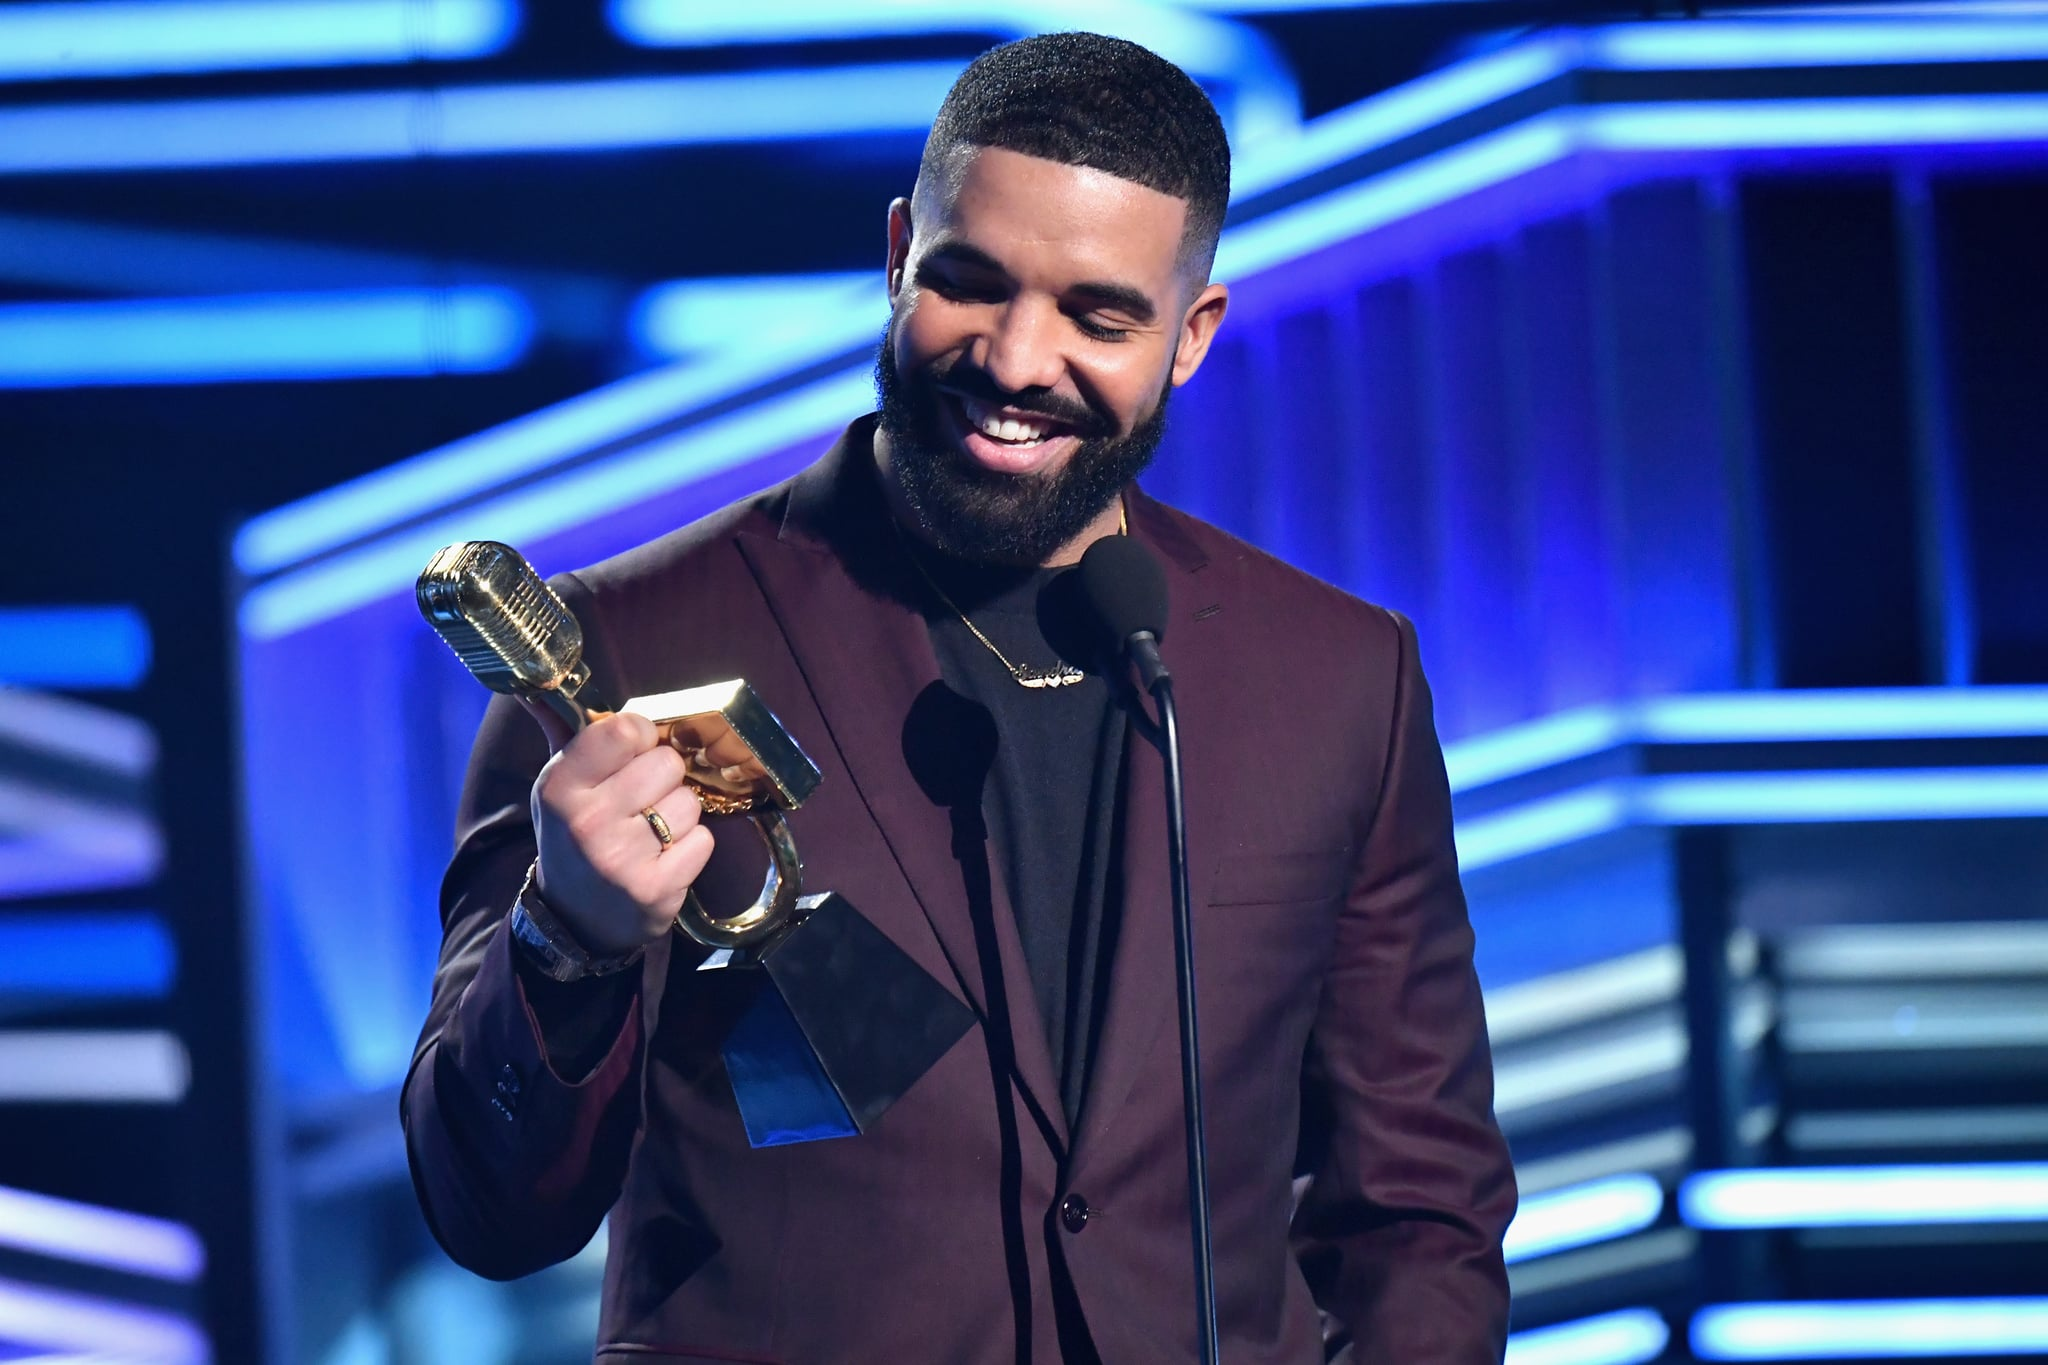 LAS VEGAS, NV - MAY 01:  Drake accepts Top Artist onstage during the 2019 Billboard Music Awards at MGM Grand Garden Arena on May 1, 2019 in Las Vegas, Nevada.  (Photo by Jeff Kravitz/FilmMagic for dcp)